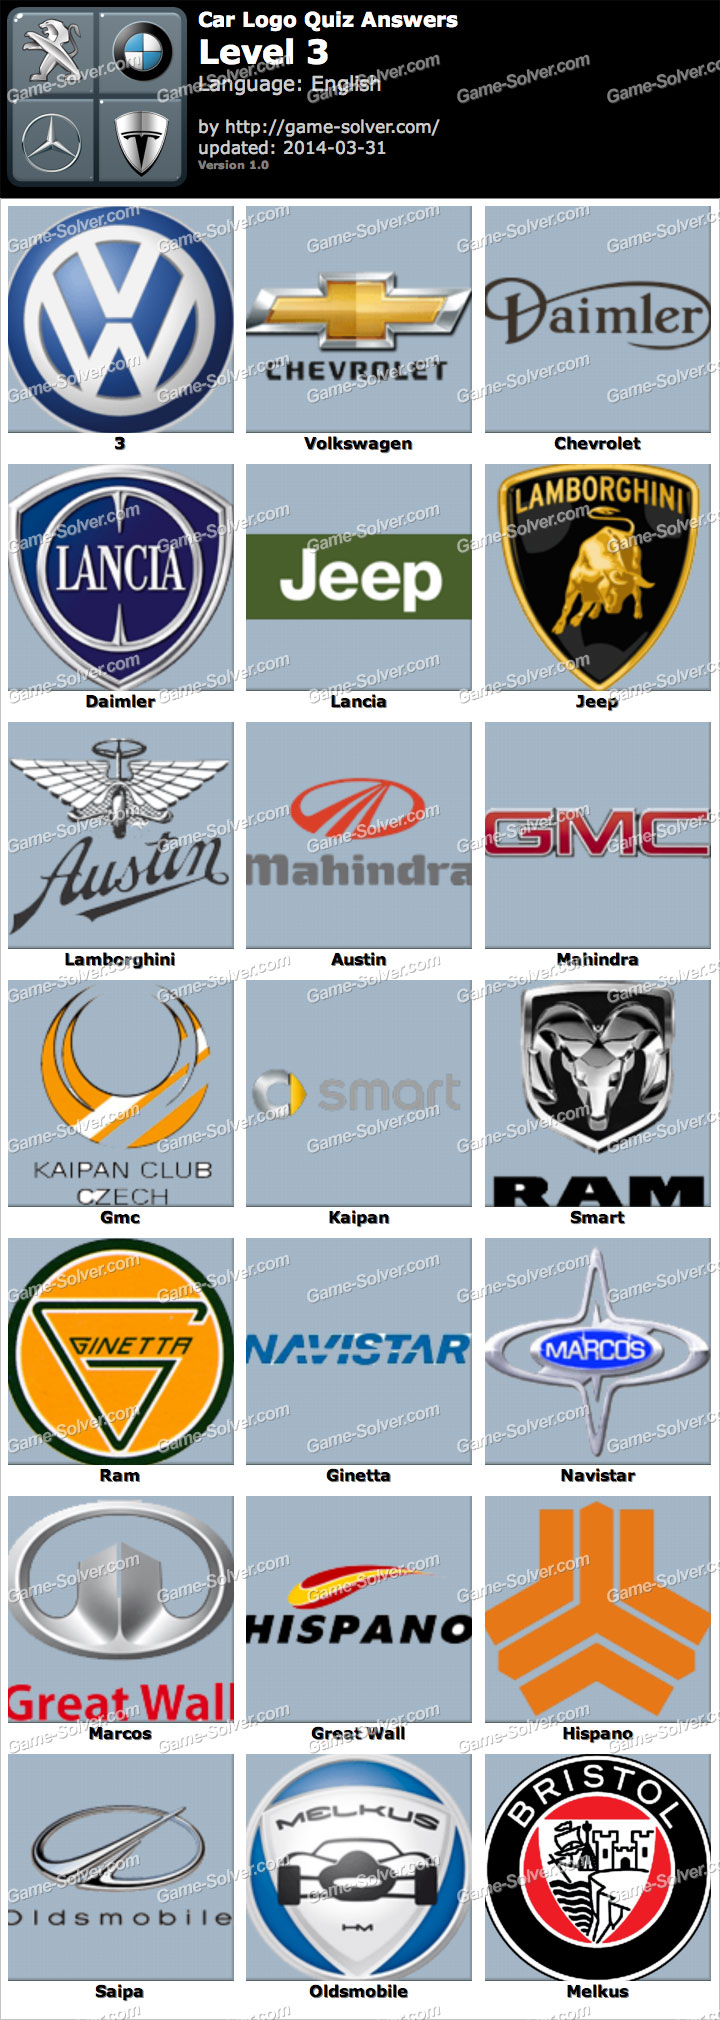 Car Logo Quiz Level 3